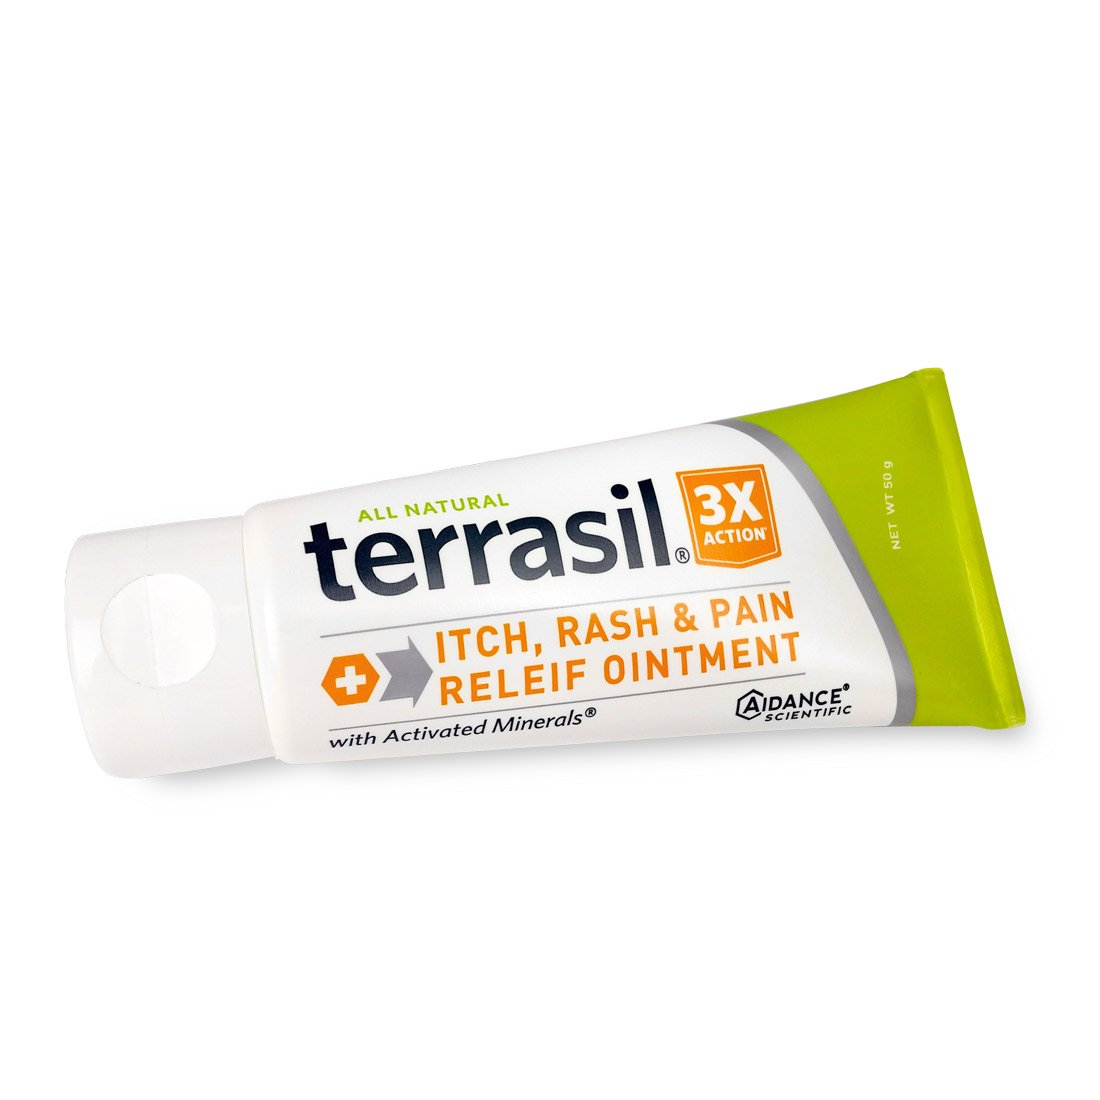 Terrasil® Itch, Rash, and Pain Relief - Fast-acting, soothing, 100% Guaranteed, All-natural ointment for, itching, dermatitis, eczema, sunburn, heat rash, poison ivy, rashes, irritation - 50g